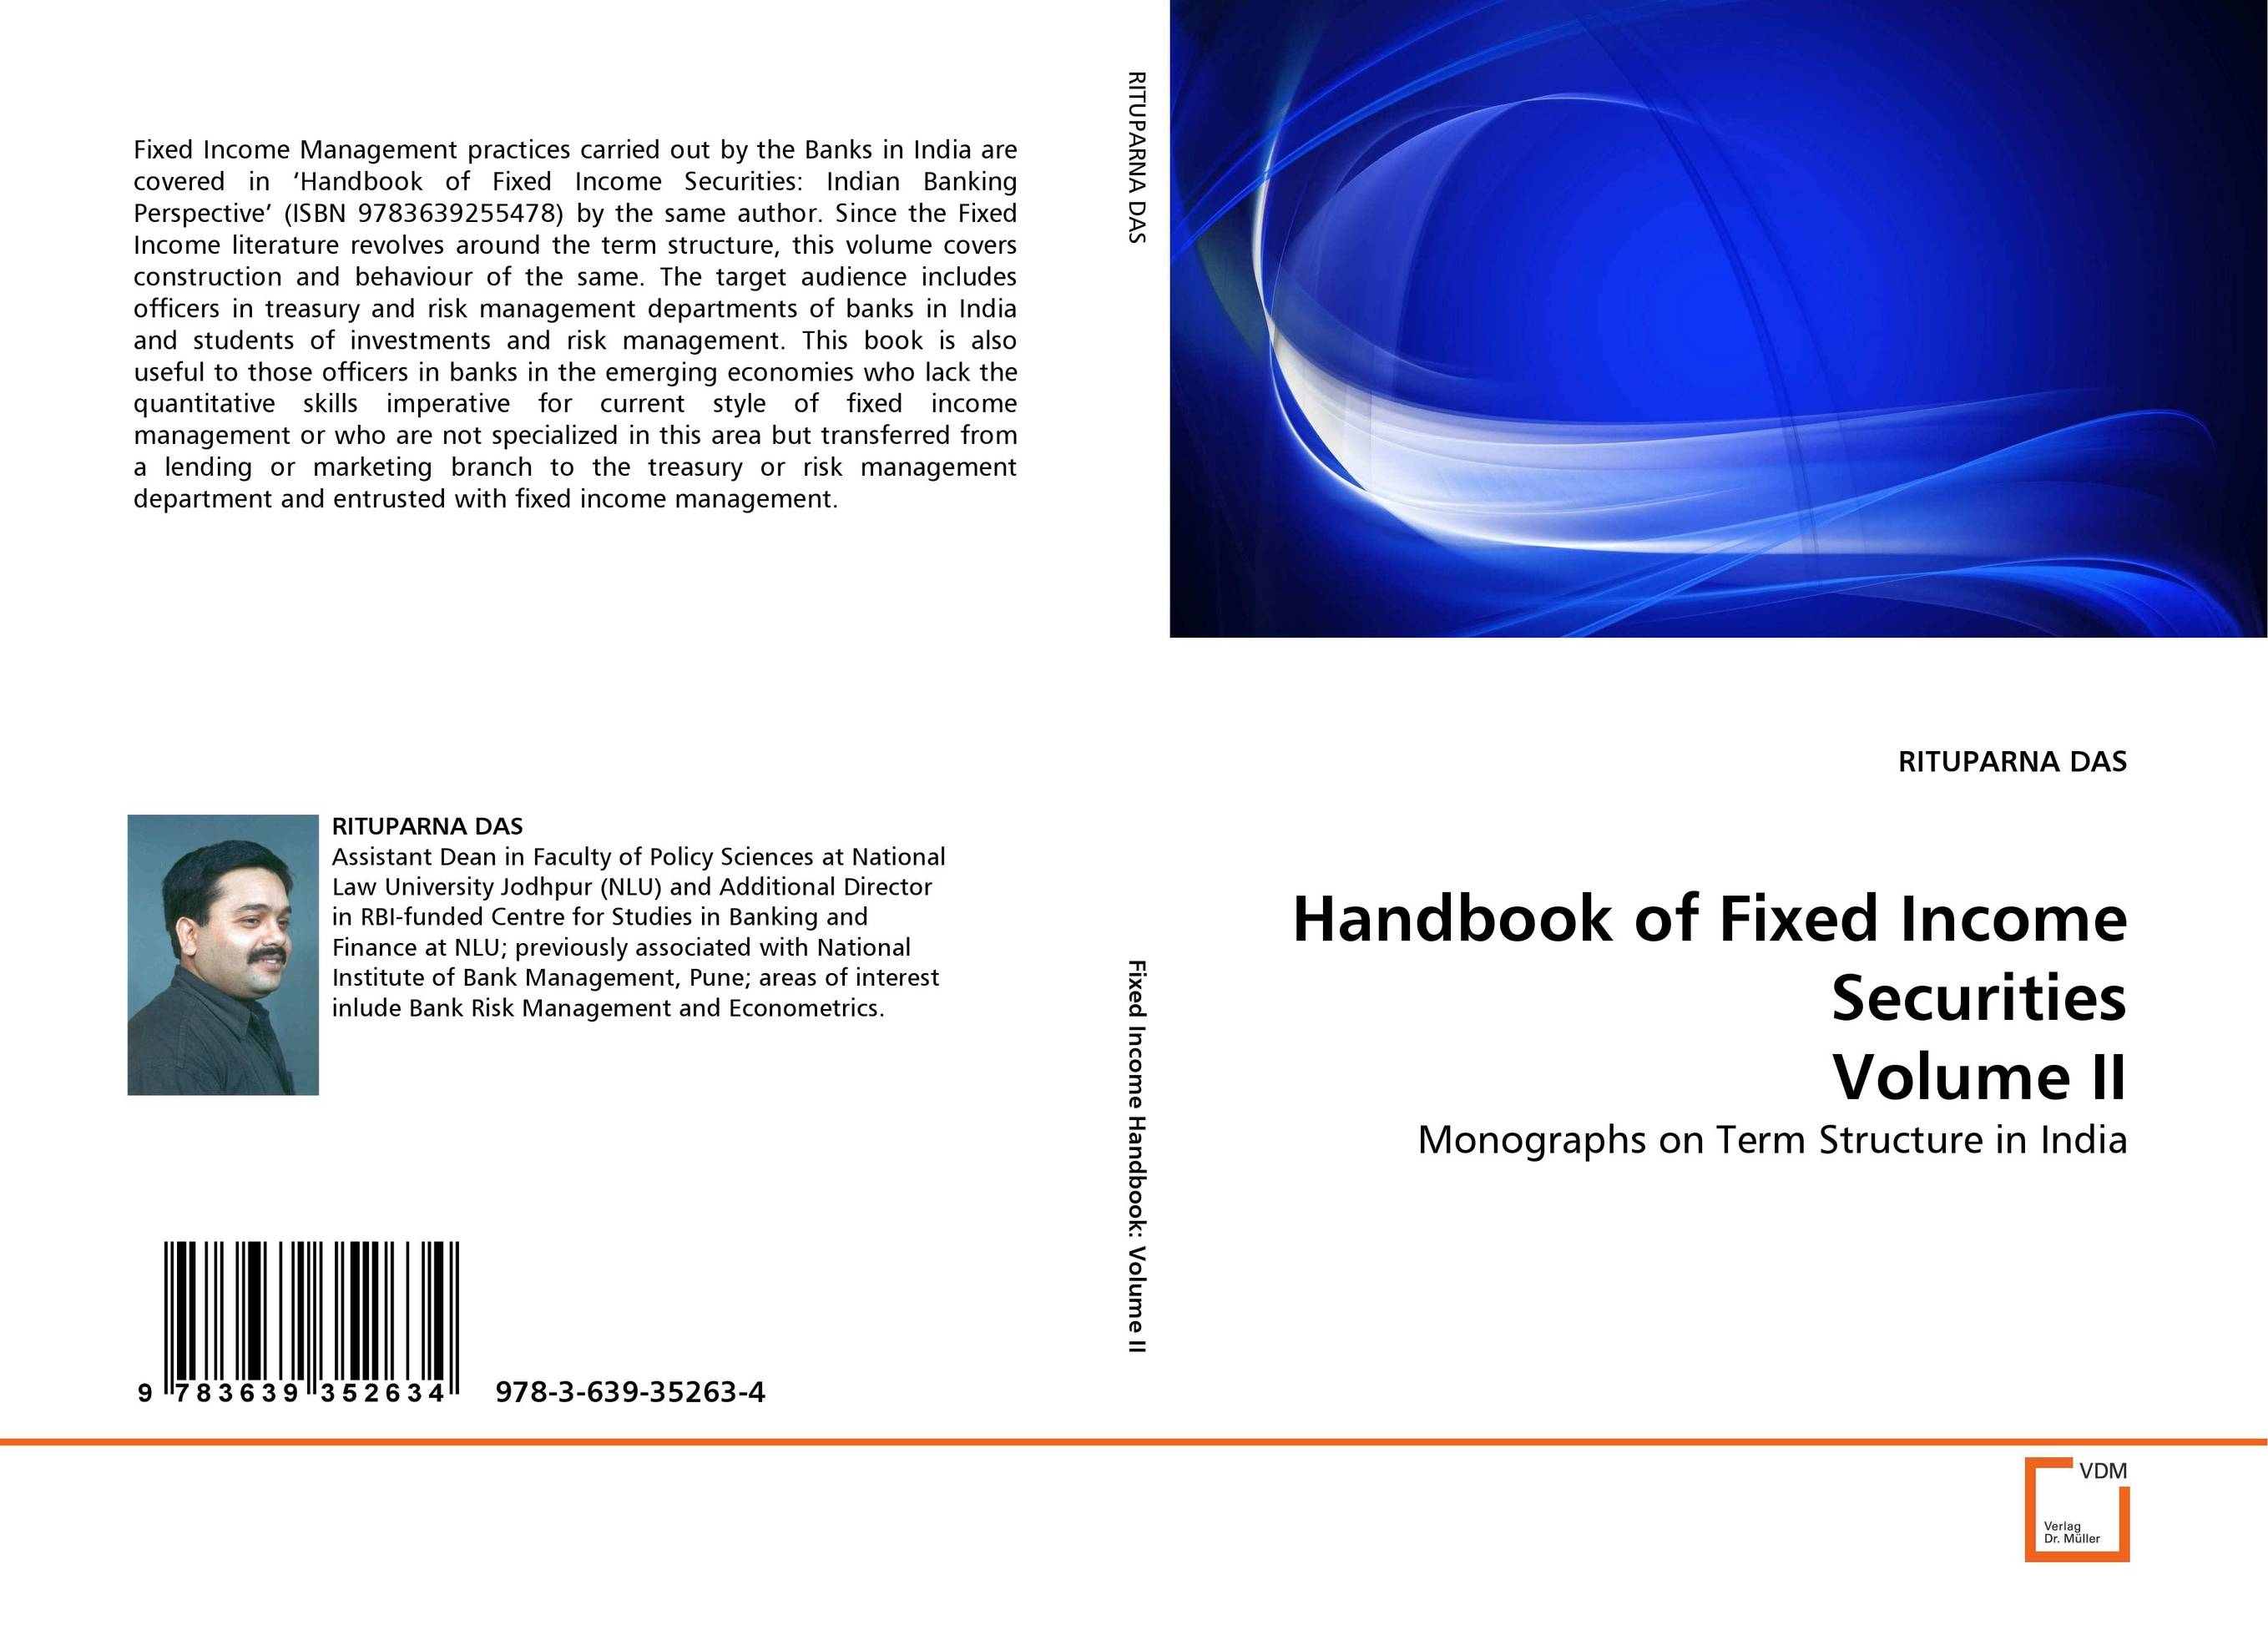 Handbook of Fixed Income Securities Volume II 1000pcs long range rfid plastic seal tag alien h3 used for waste bin management and gas jar management